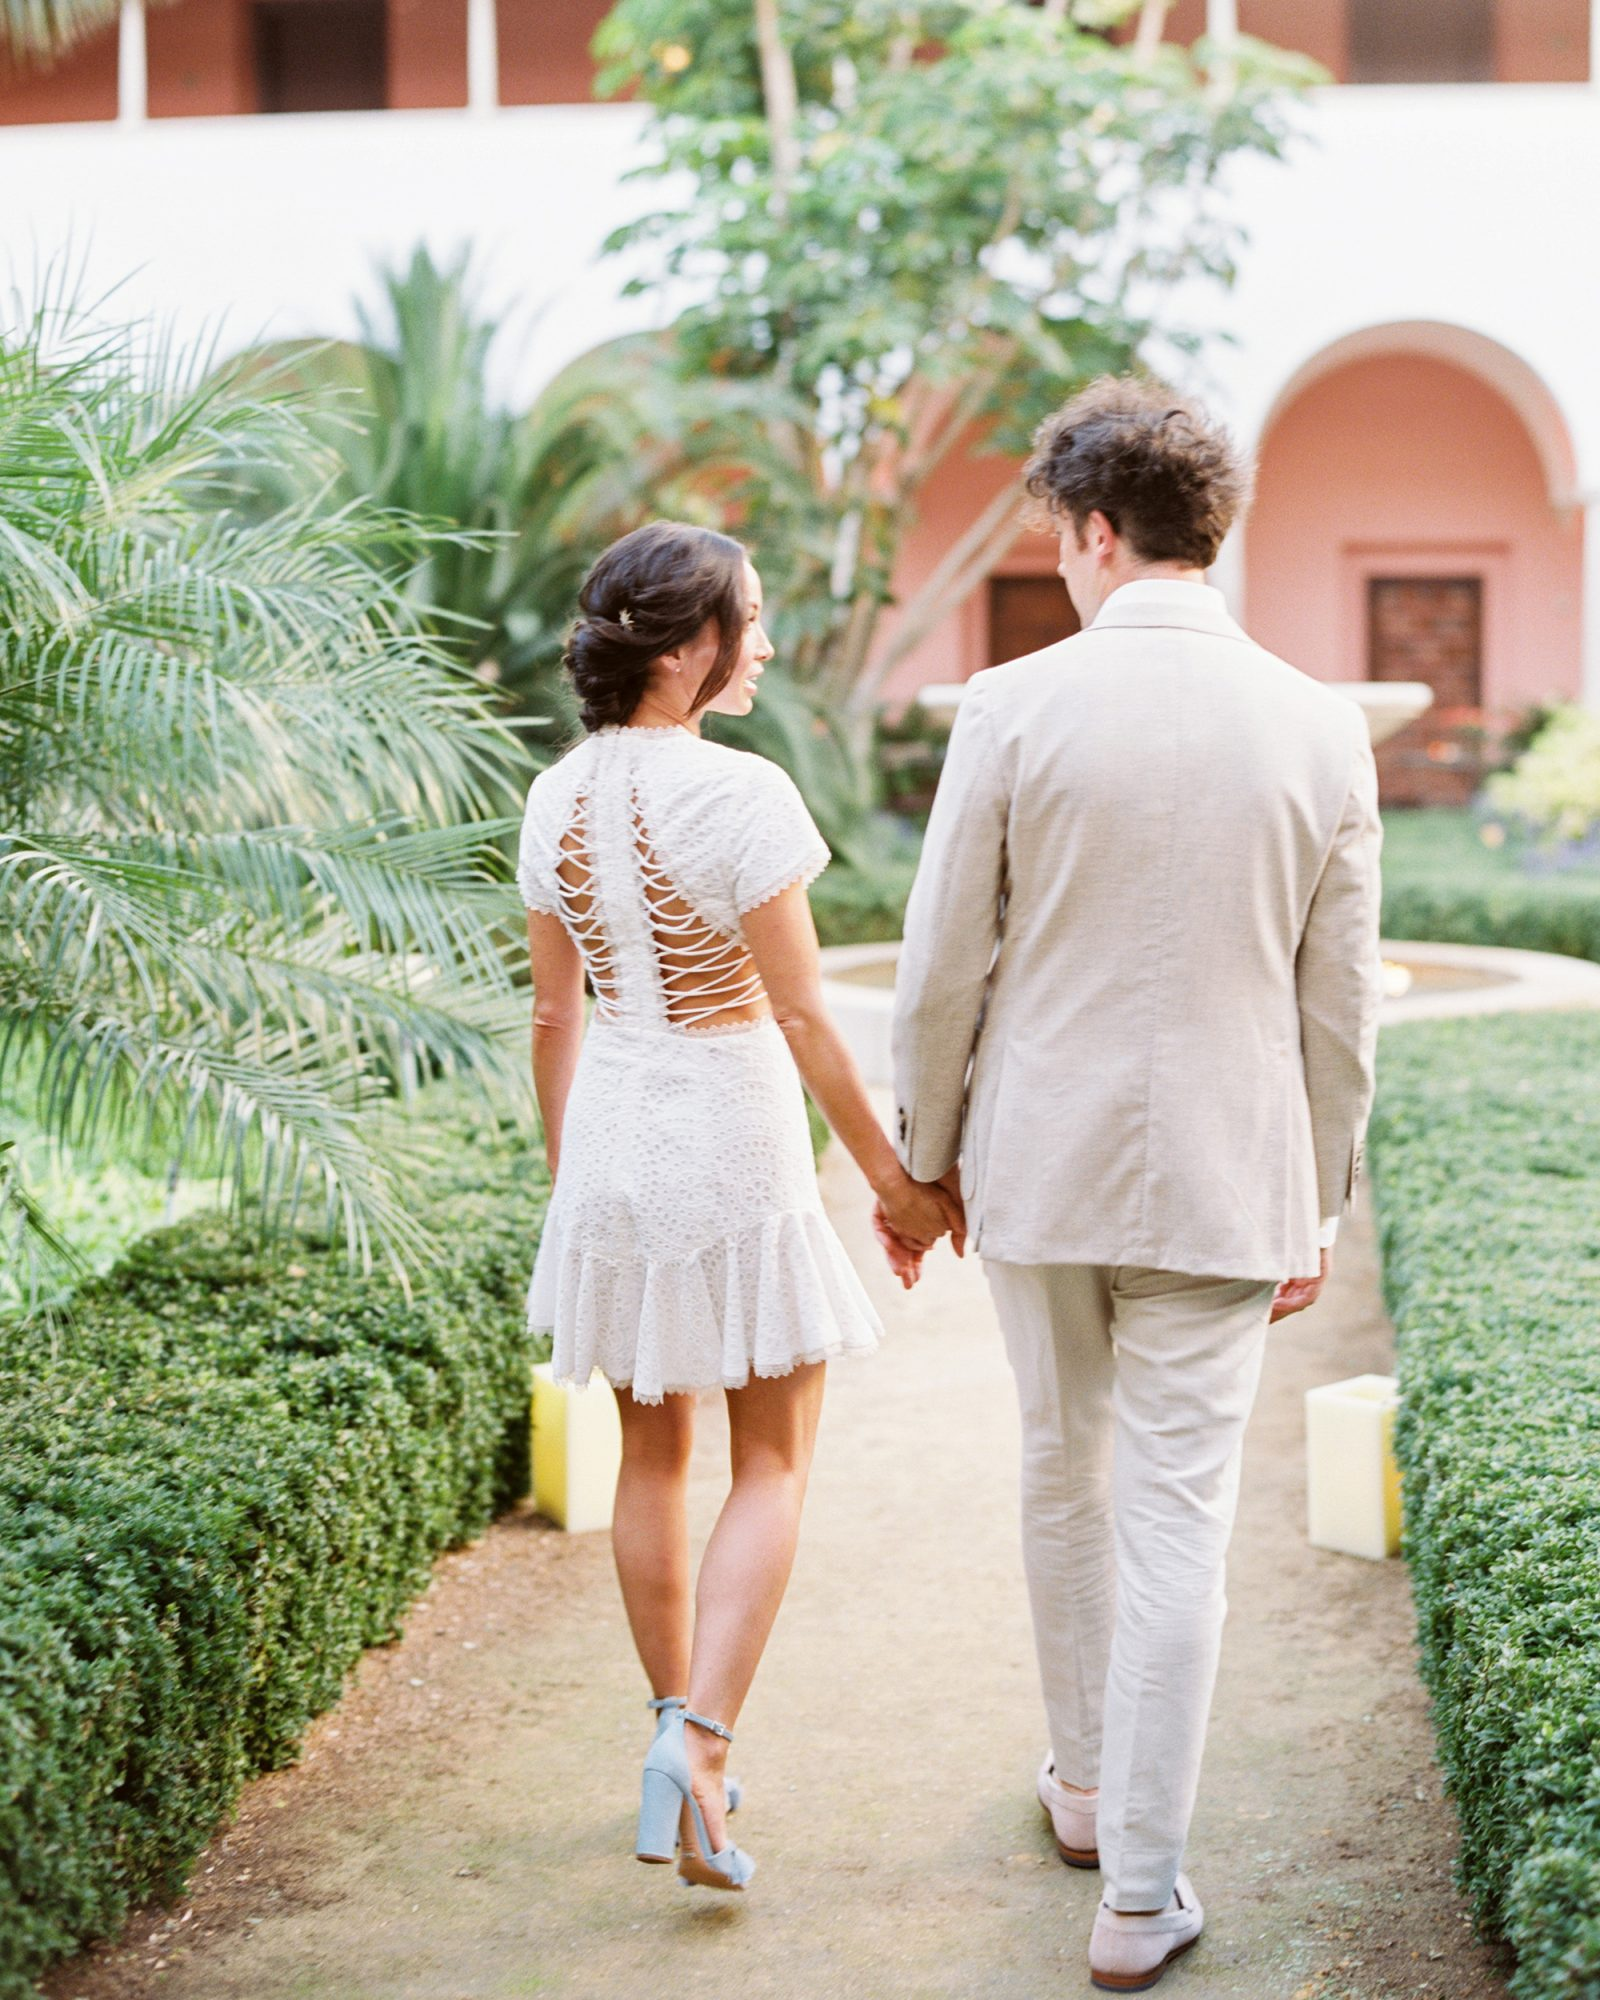 bride and groom holding hands walking down path